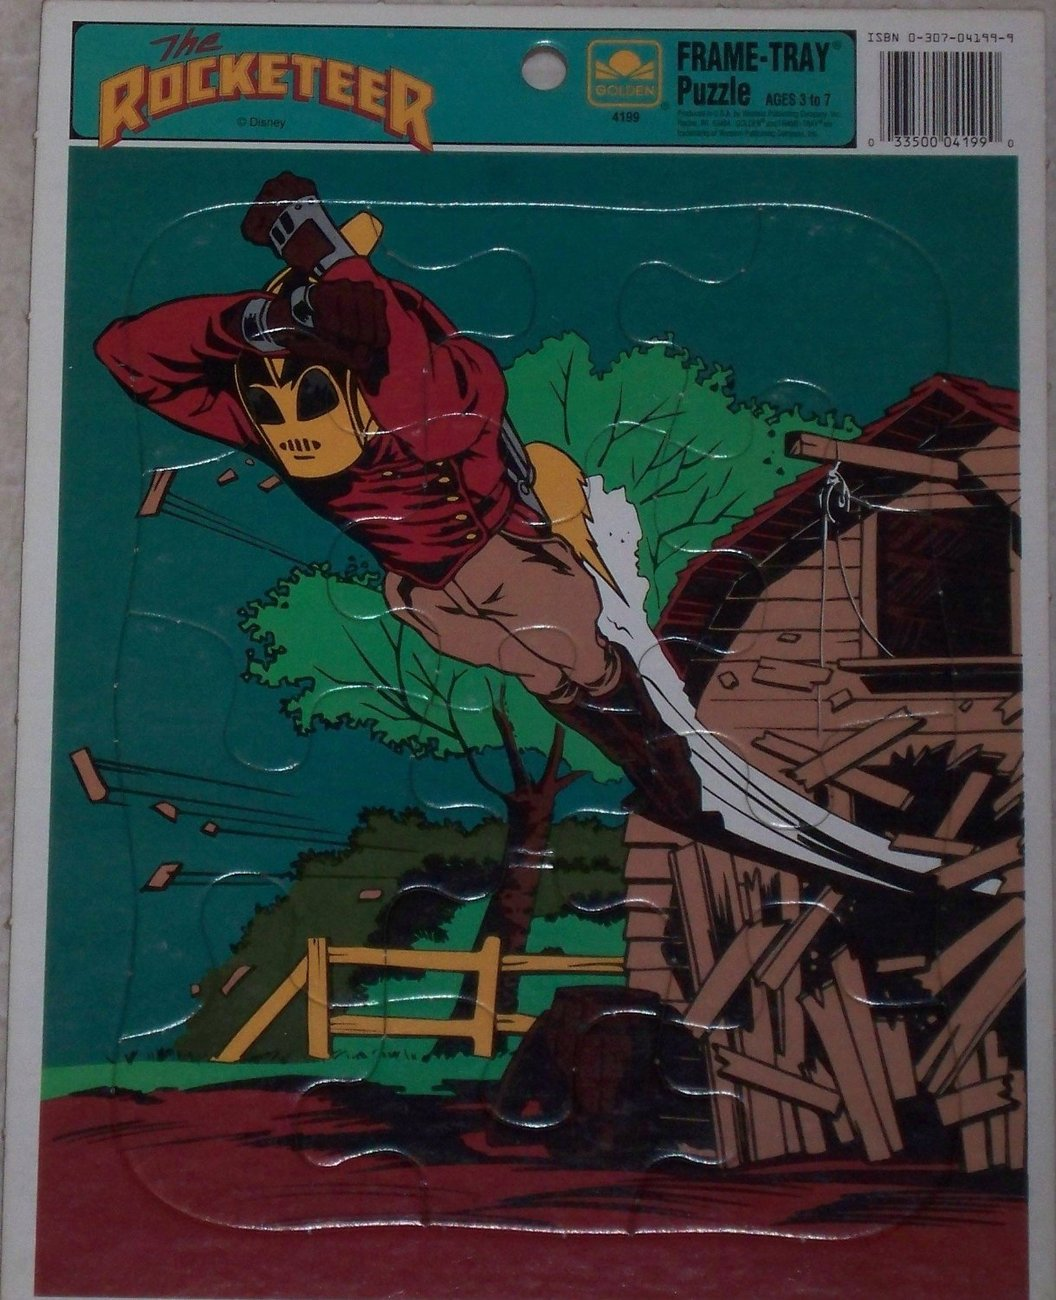 Primary image for Vintage Disney's The Rocketeer 12 Piece Frame Tray Puzzle by Golden